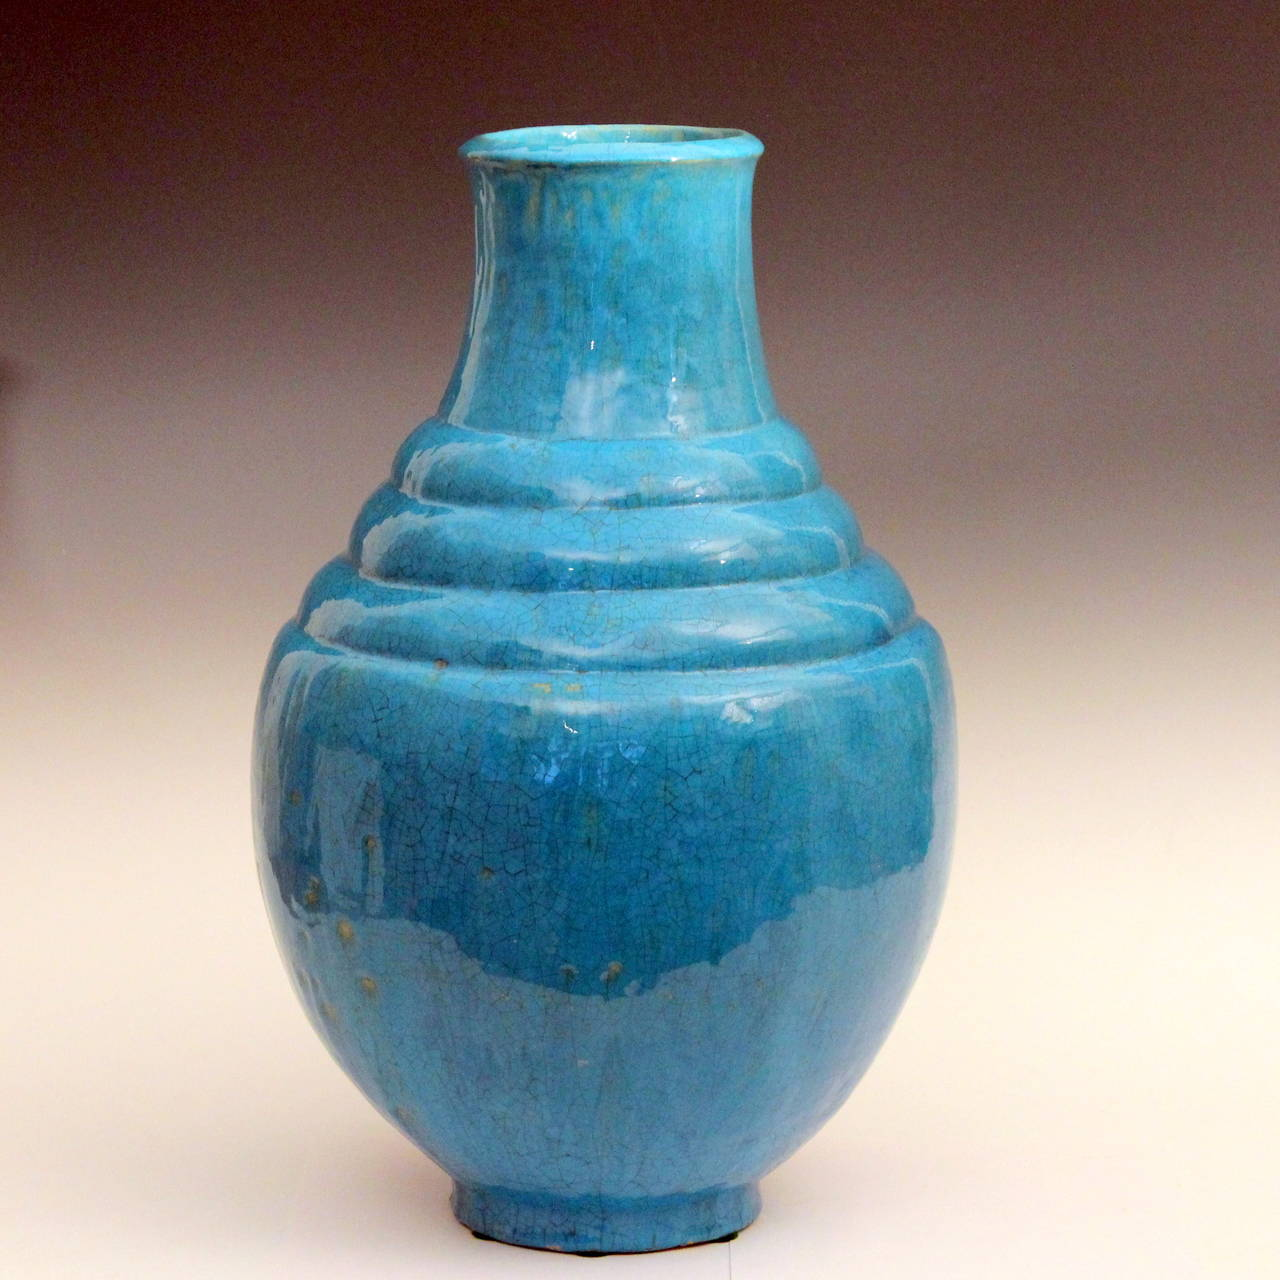 Exceptional mary yancey turquoise art deco studio pottery vase for american exceptional mary yancey turquoise art deco studio pottery vase for sale reviewsmspy